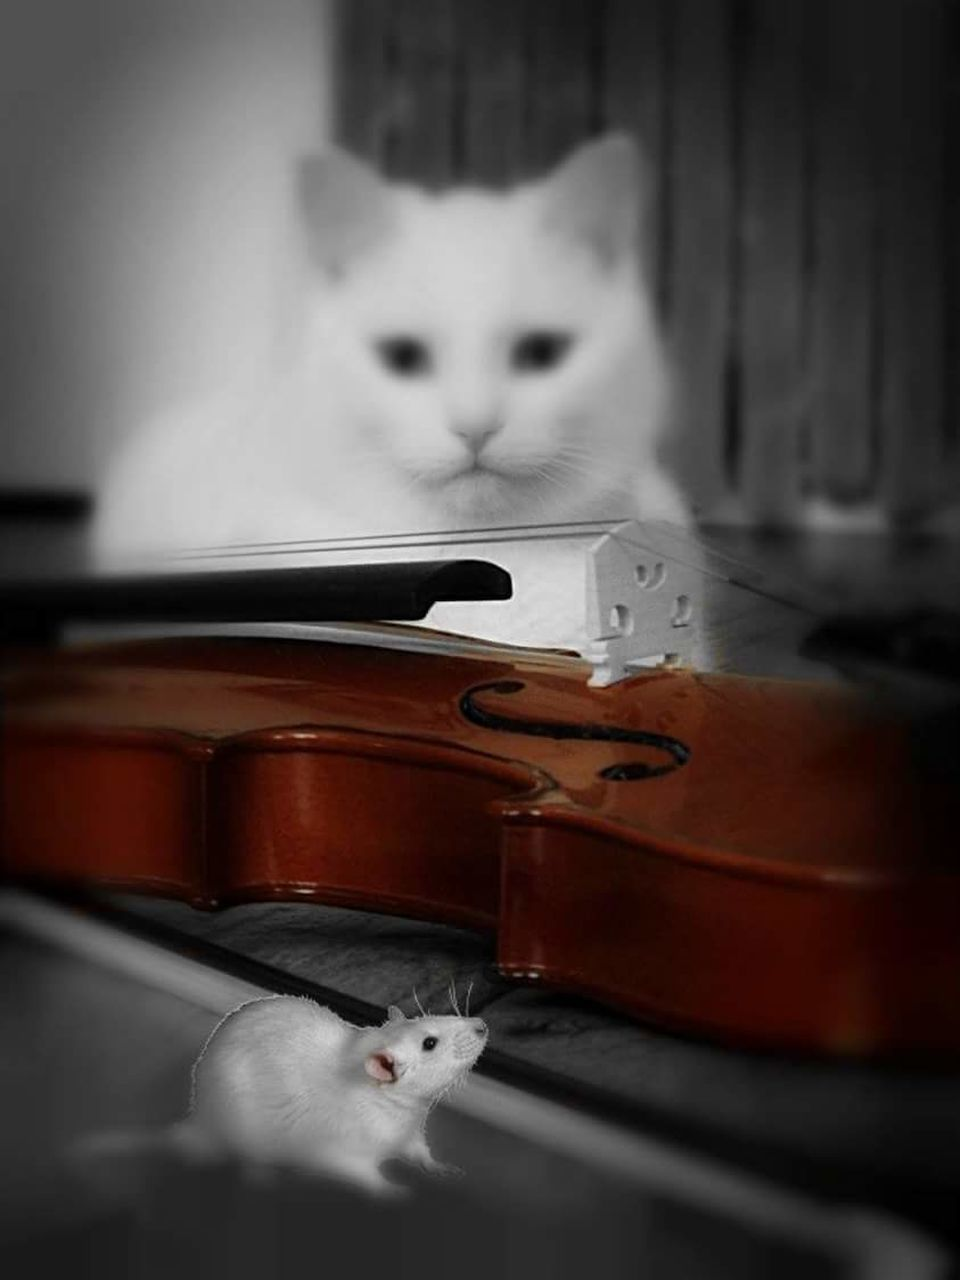 one animal, domestic cat, animal themes, pets, domestic animals, feline, mammal, cat, indoors, whisker, musical instrument, animal, animal head, music, no people, hamster, animal wildlife, arts culture and entertainment, animals in the wild, kitten, technology, close-up, day, bird